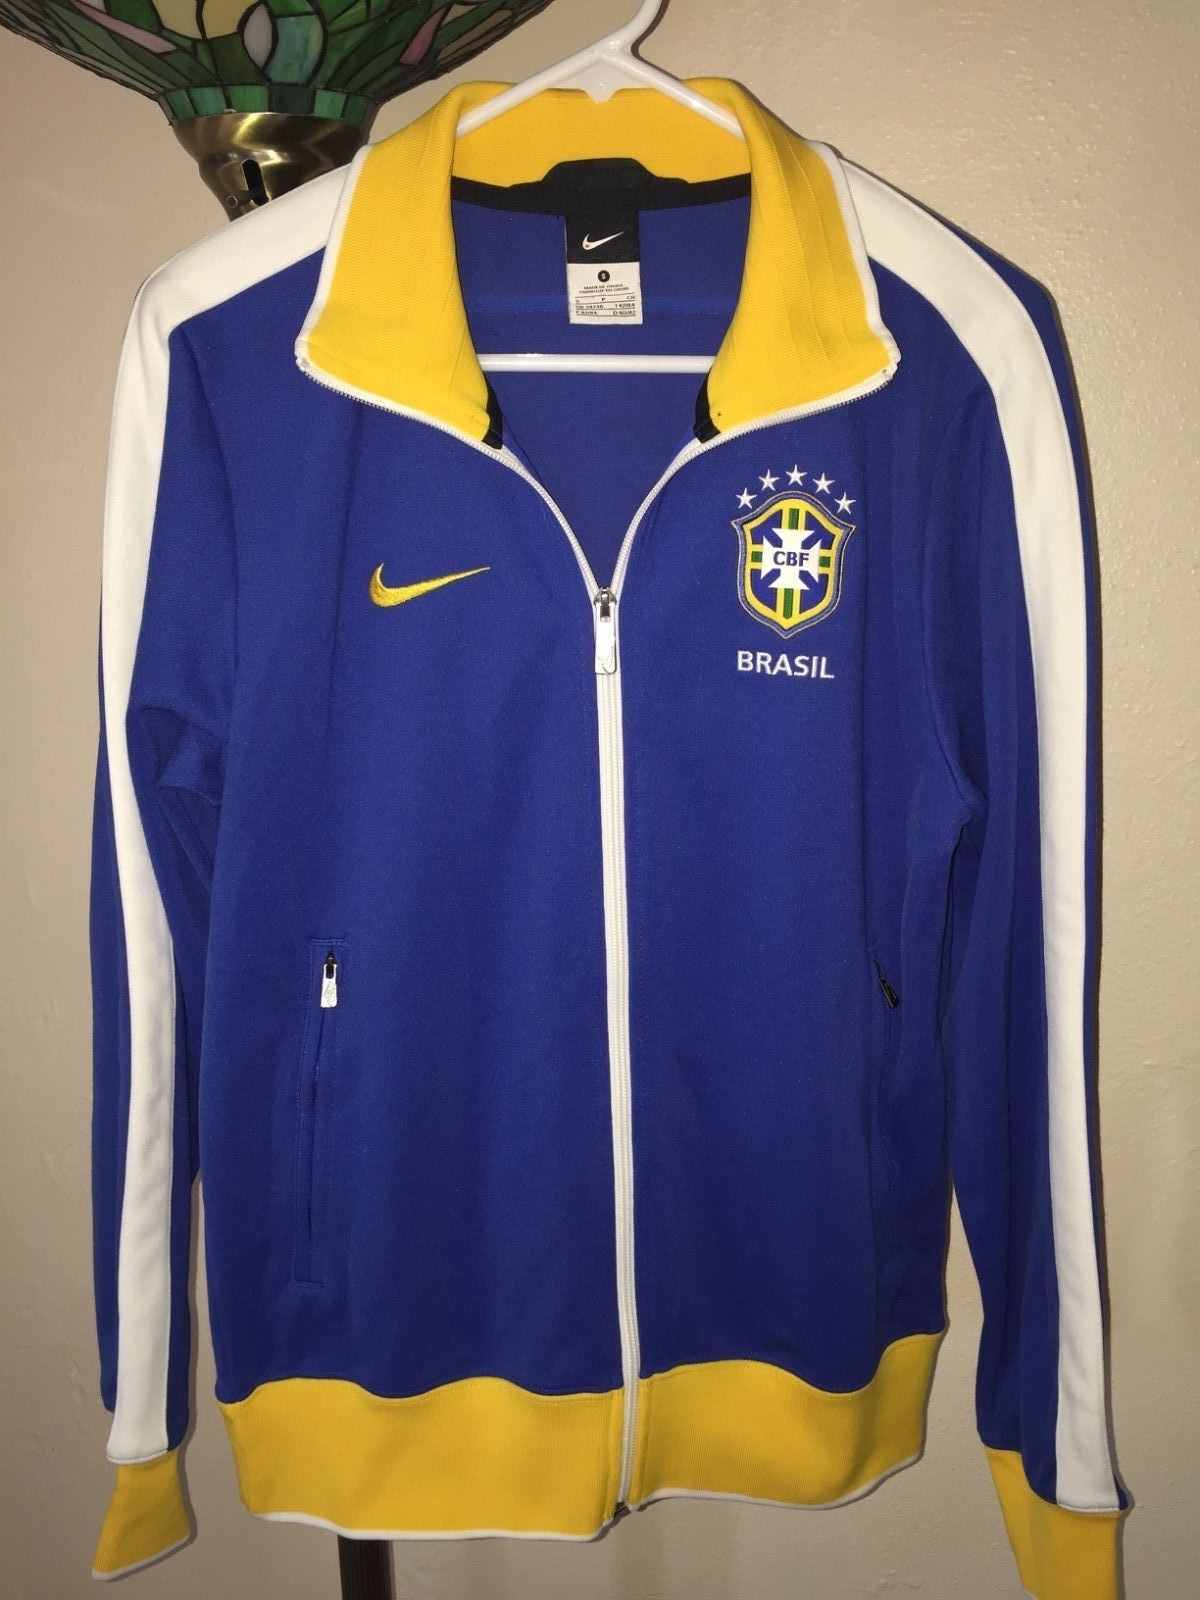 a6494781bcfcc Nike Brazil Brasil World Cup WC 2010 and 16 similar items. S l1600